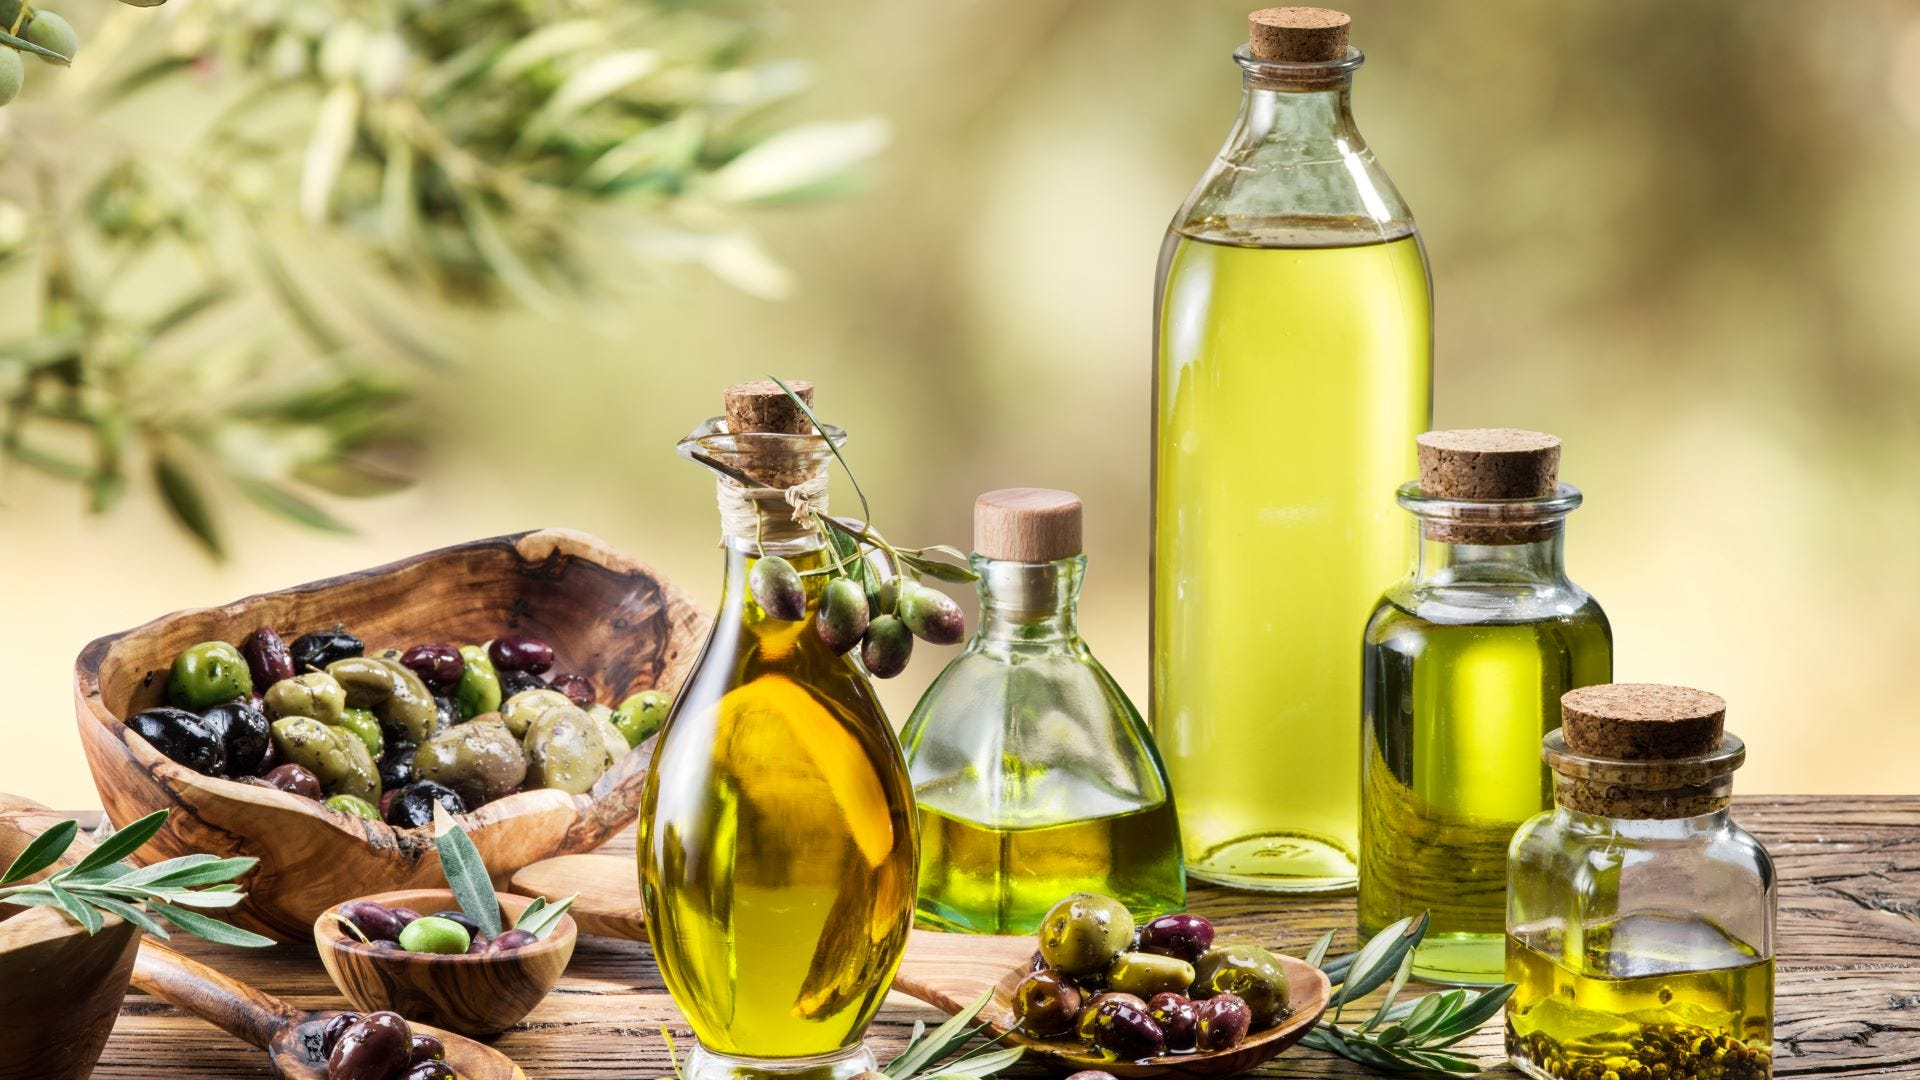 Four bottles of olive oil and olive berries on the wooden table under an olive tree.